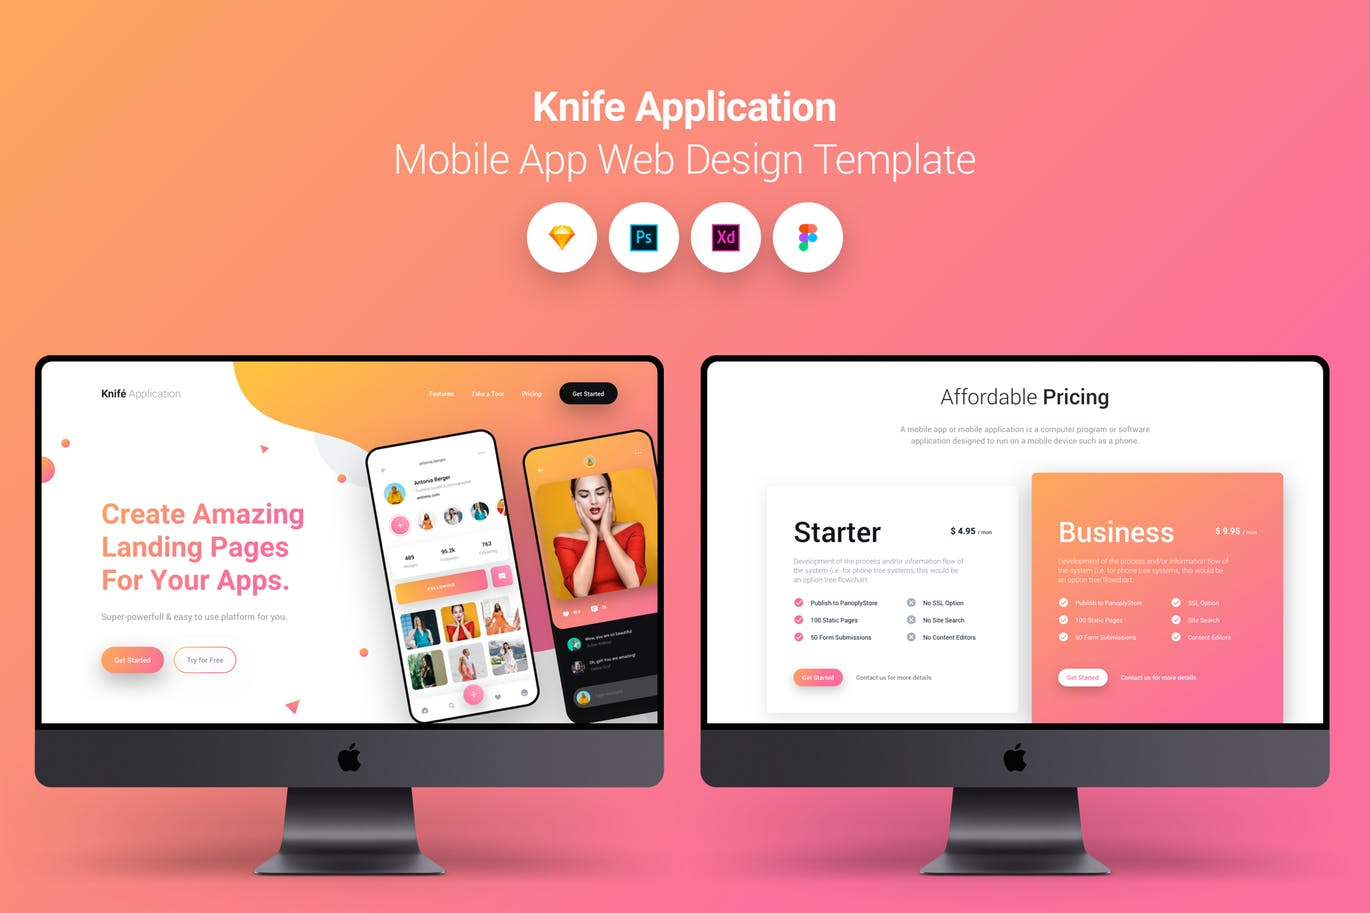 时尚高端多格式APP UI应用程序移动应用程序登陆页面Temlate Knife Application - Mobile App Landing Page Template by PanoplyStore